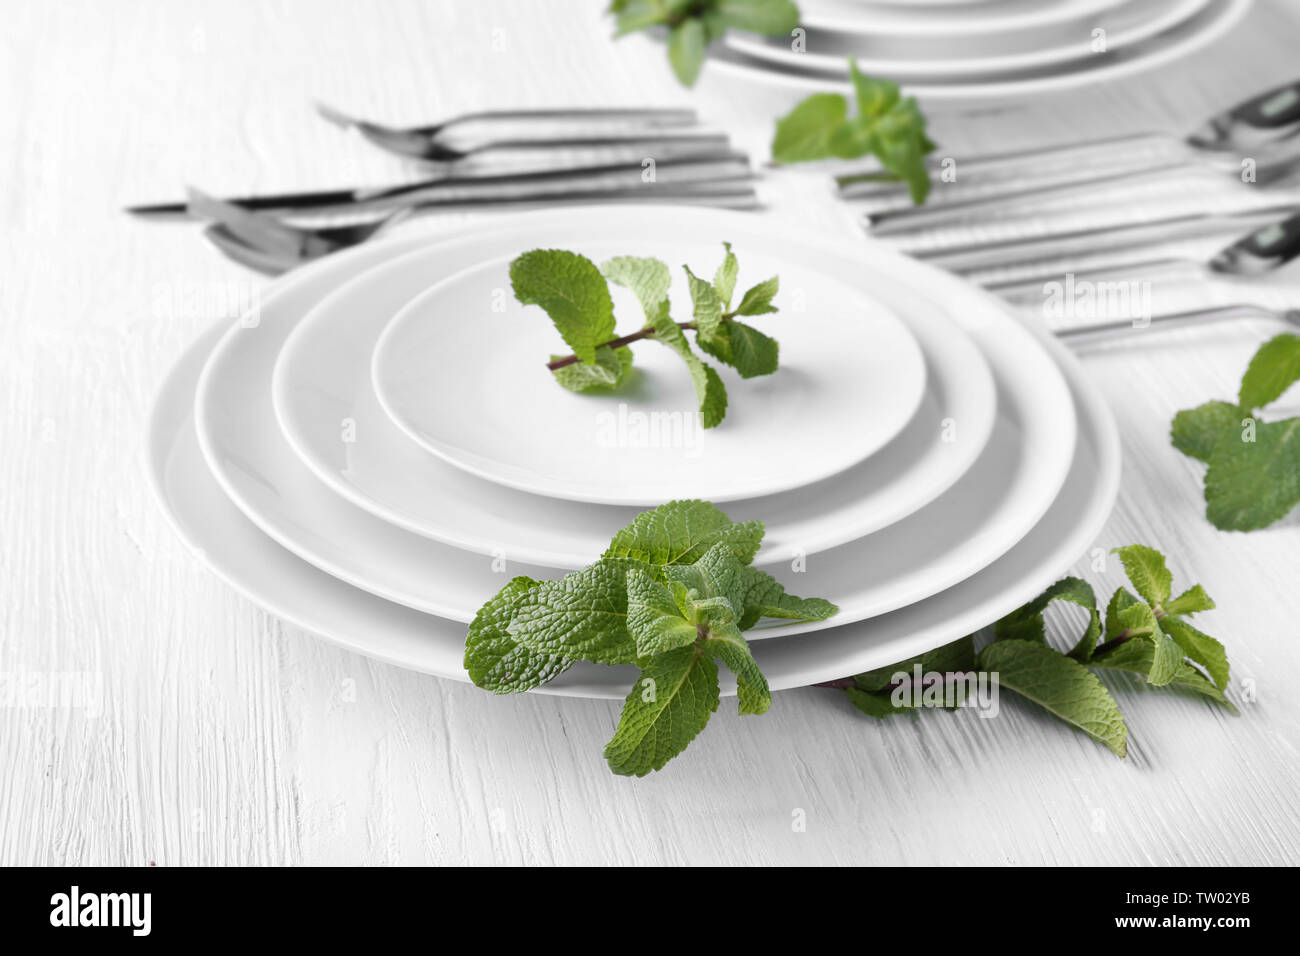 Mint on plates and cutlery set on background - Stock Image